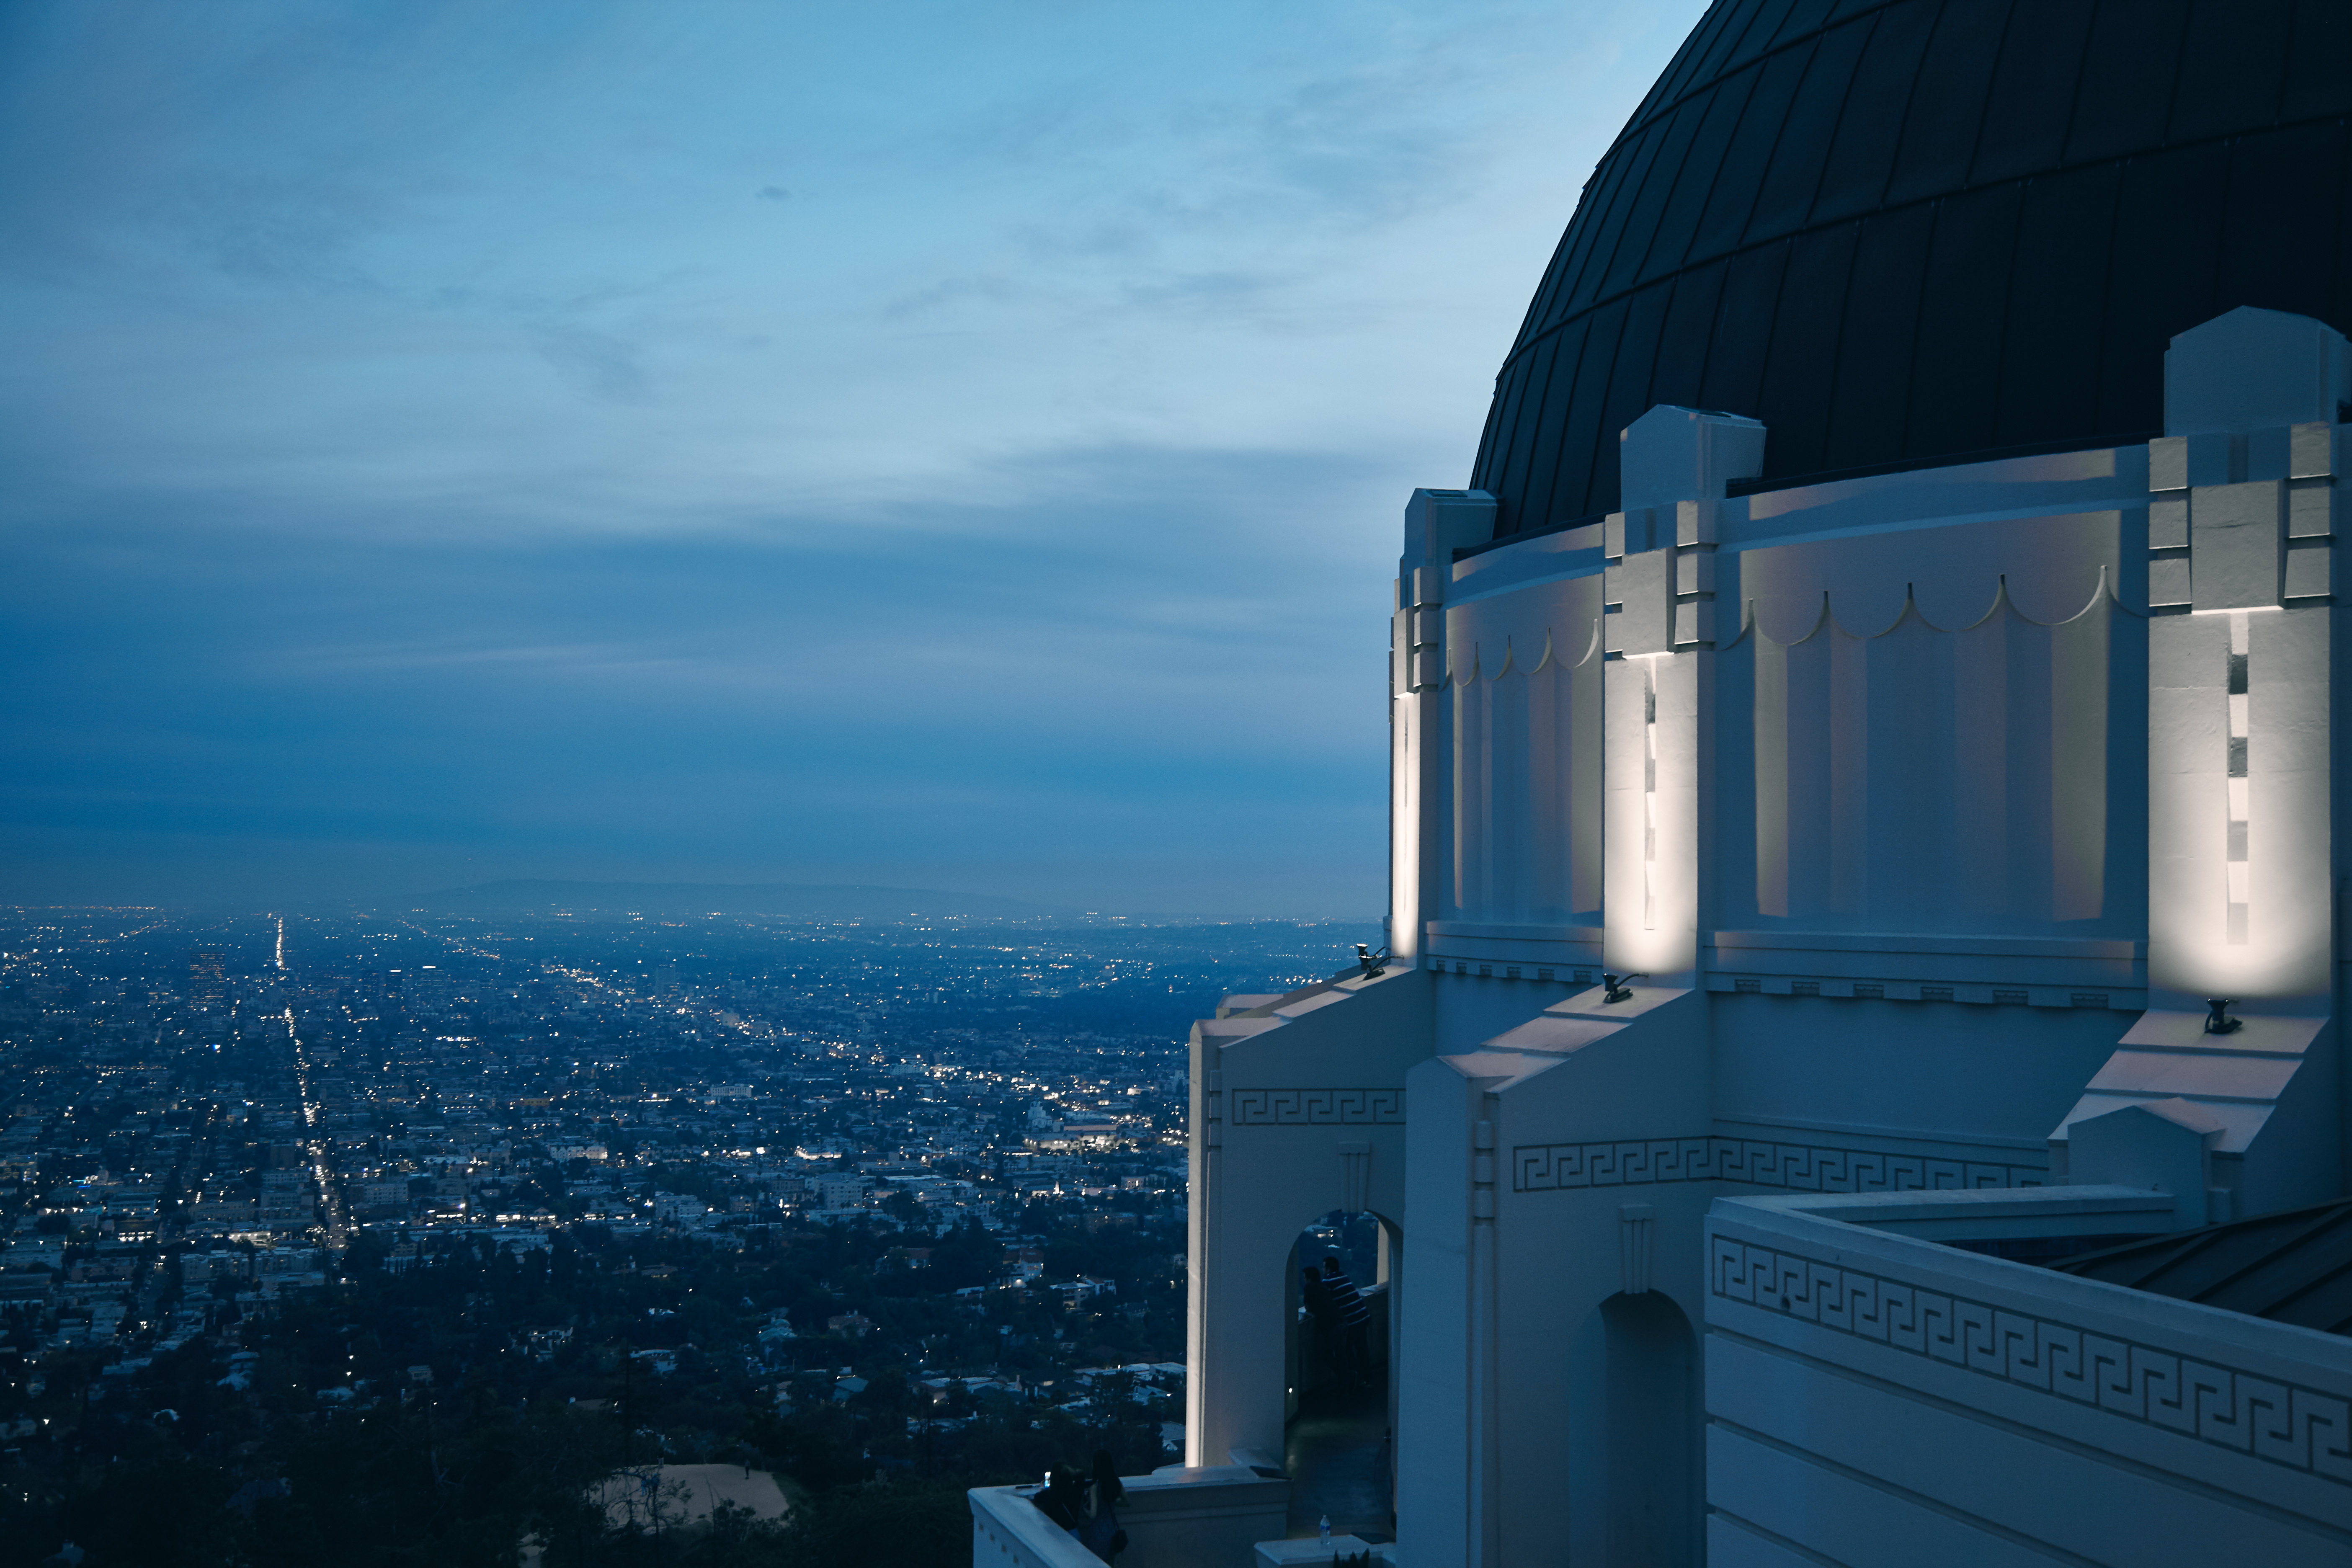 Observatory - A complete Guide to Los Angeles #travel #SUA #LA #guide #LosAngeles